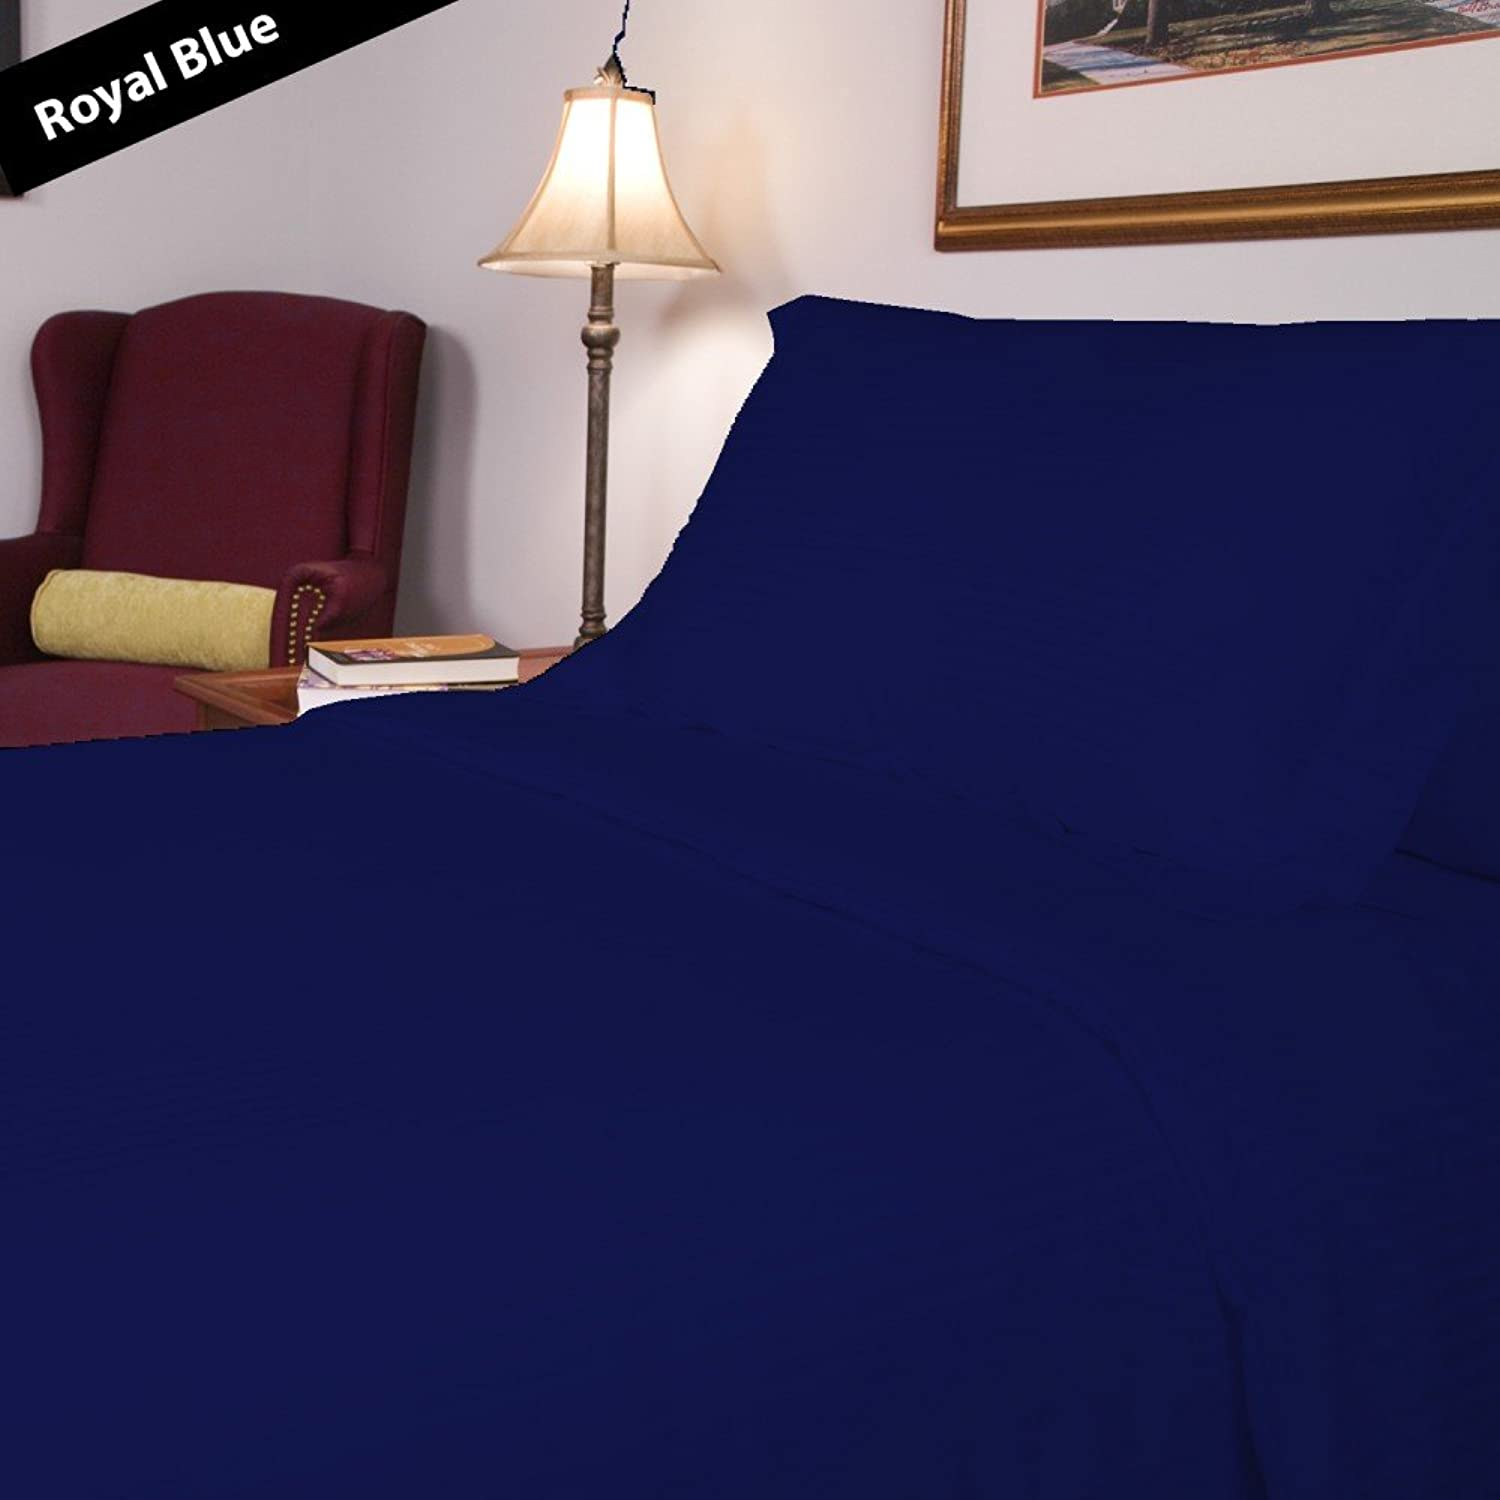 1 Piece Flat Sheet Stripe Pattern 100% Egyptian Cotton 400 Thread Count Available in 3 Different Sizes California King King Full & 26 colors (Full,Royal bluee).